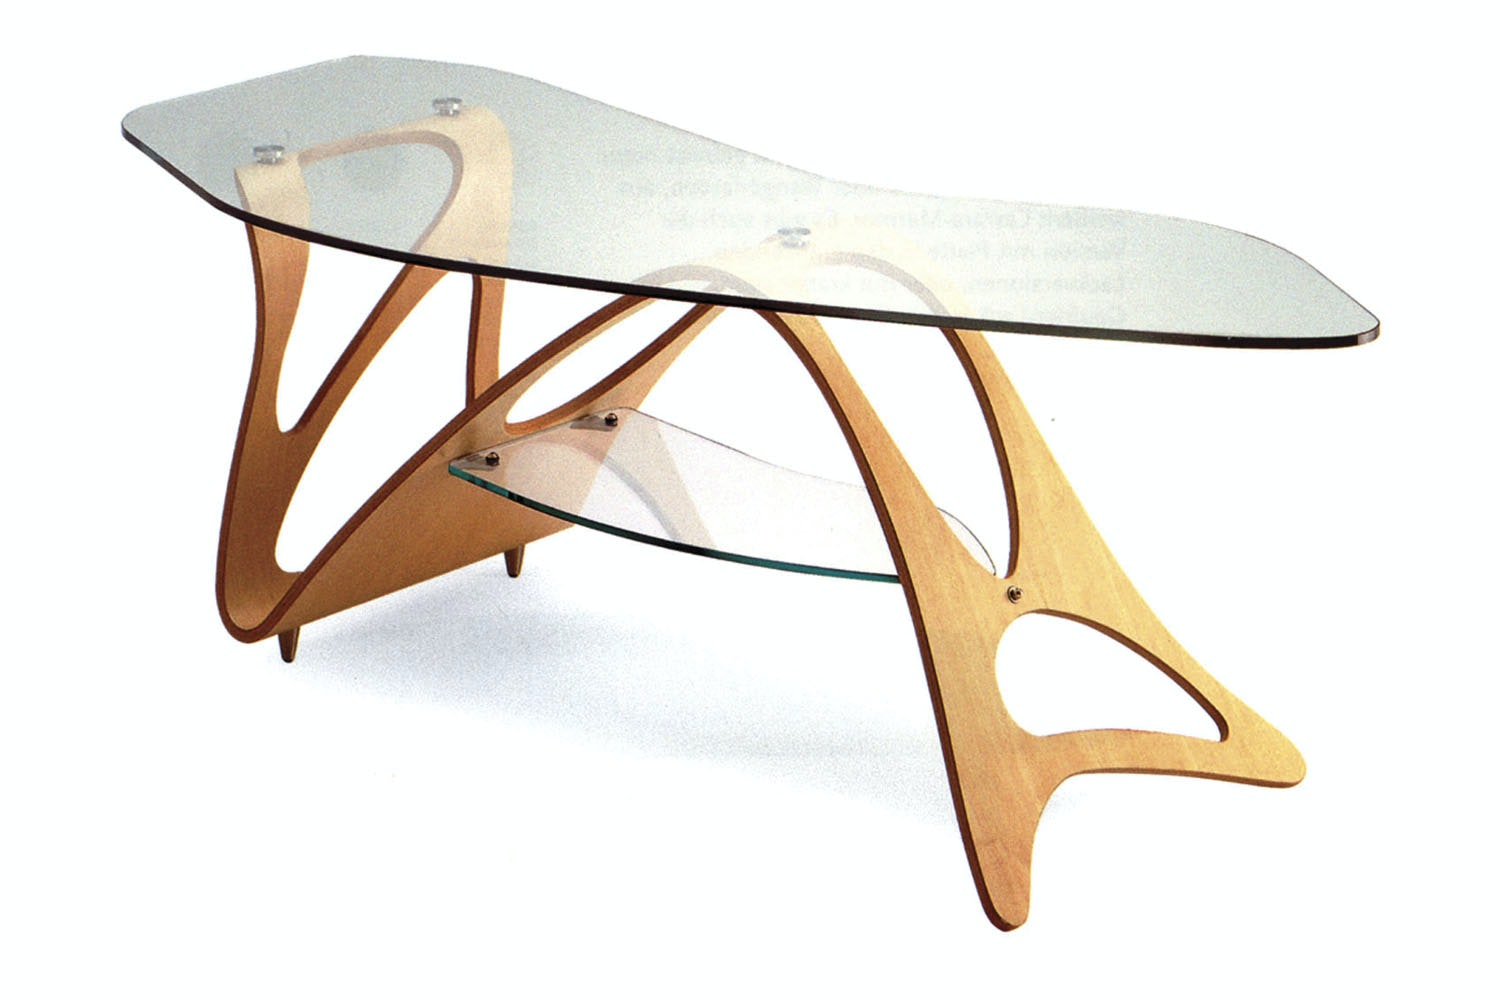 Arabesco Coffee Table by Carlo Mollino for Zanotta